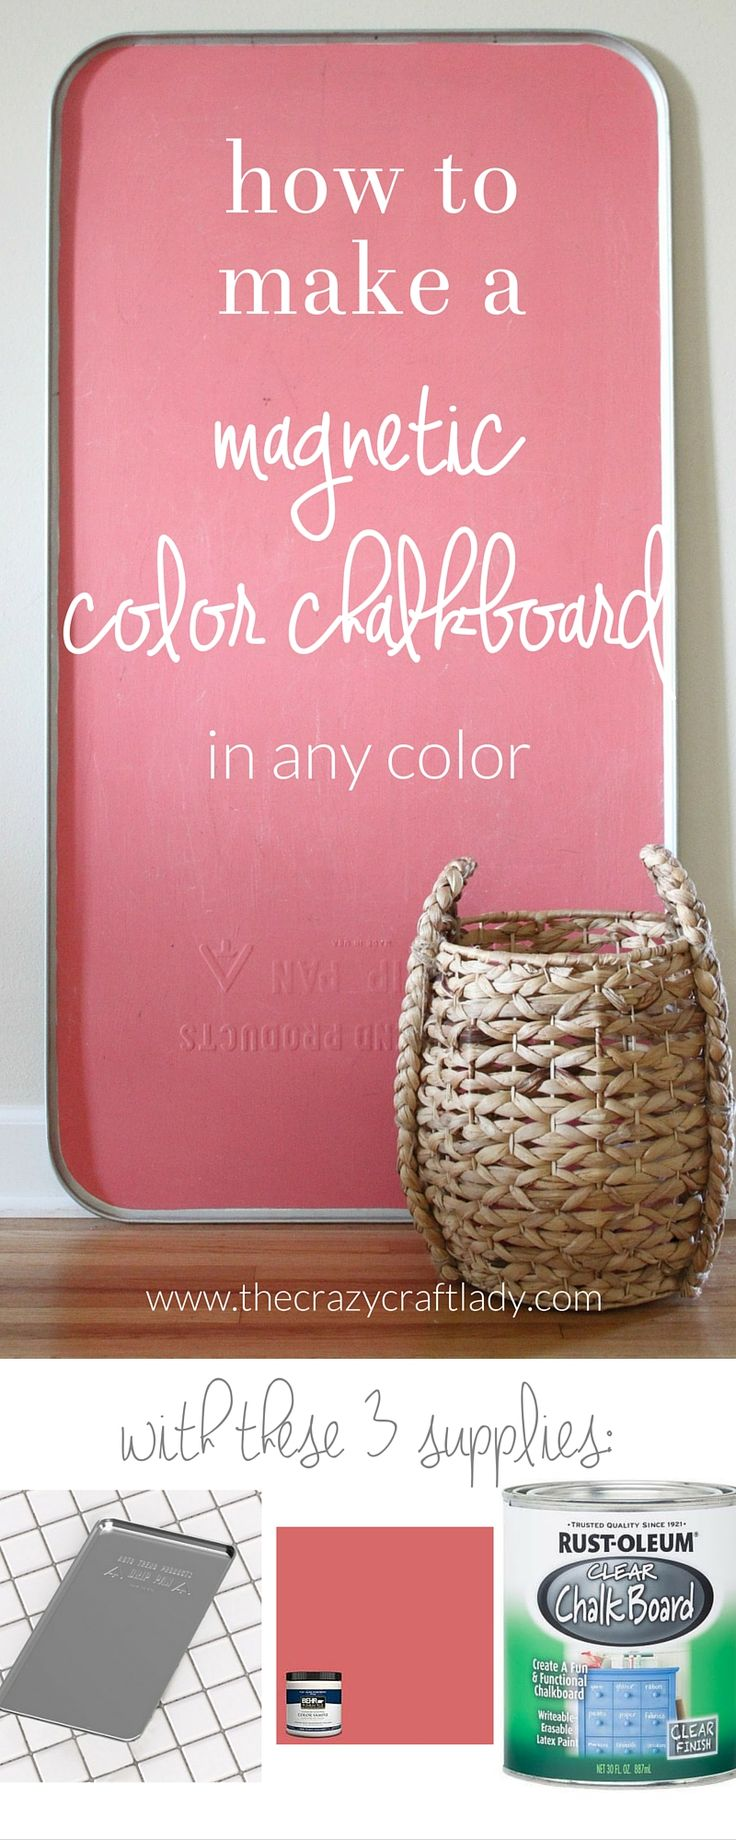 how to make a magnetic color chalkboard with colored chalkboard paint in any color